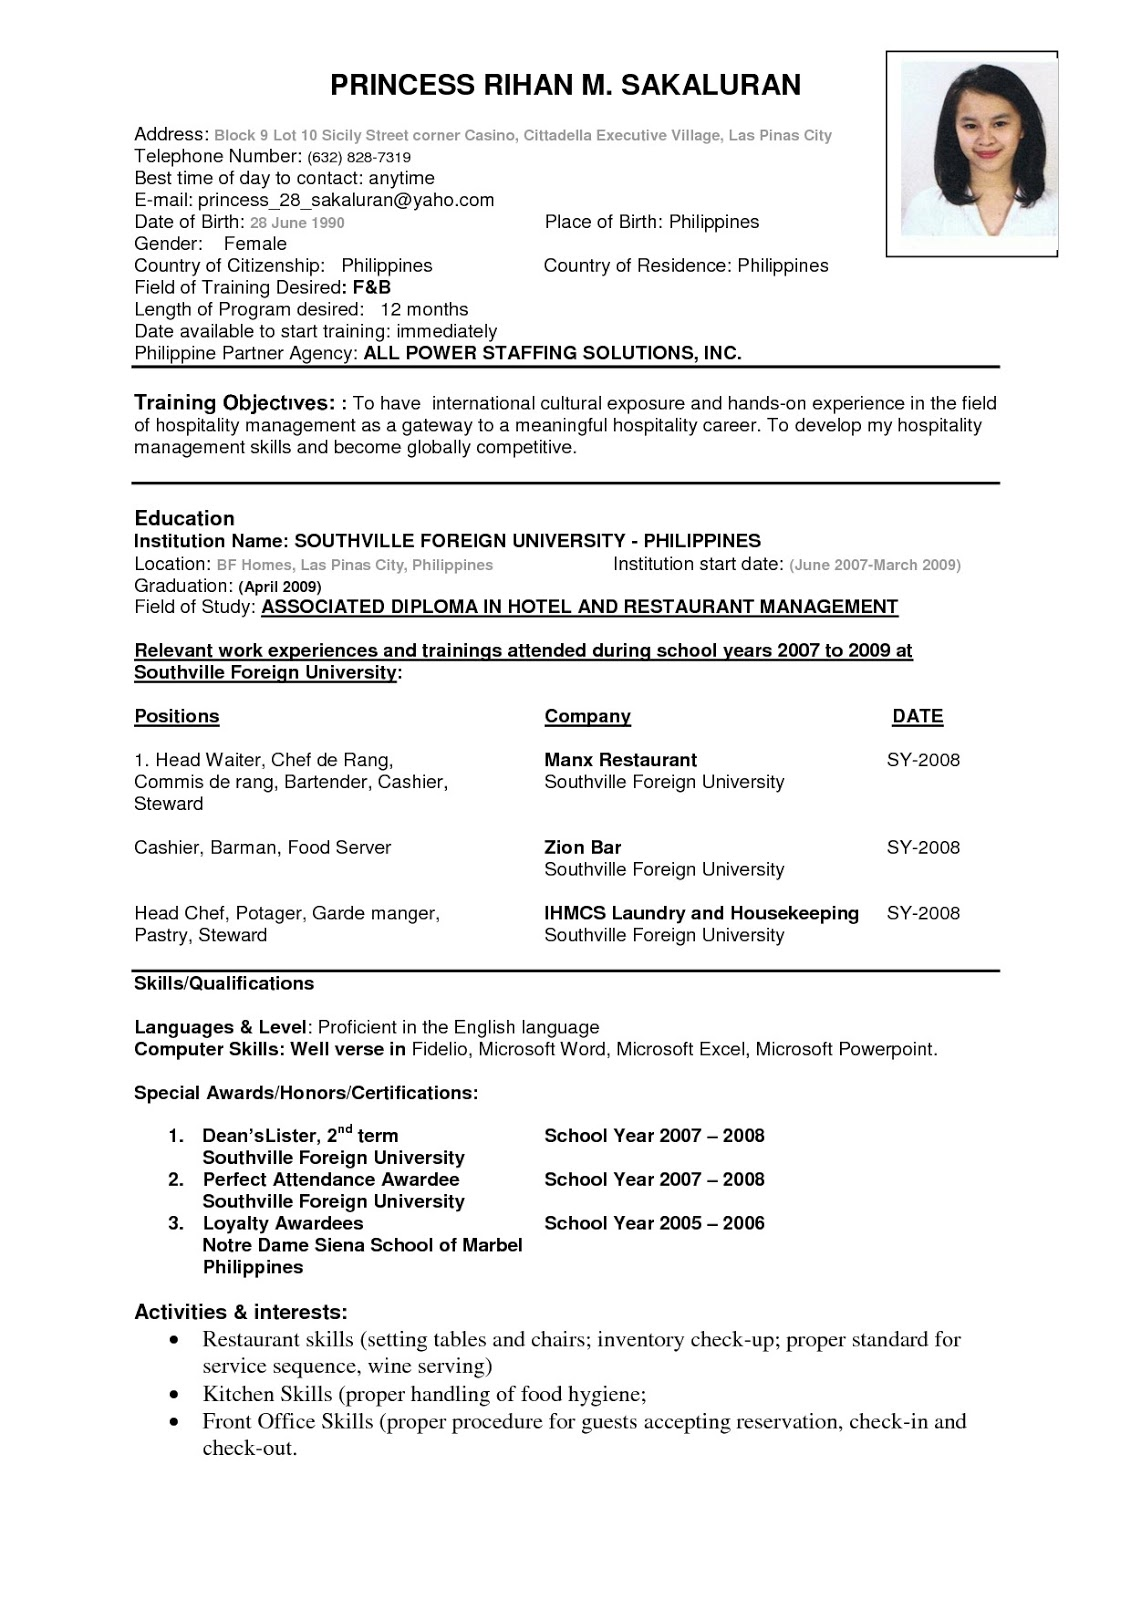 business resume template effective ways to use them - Free Business Resume Template